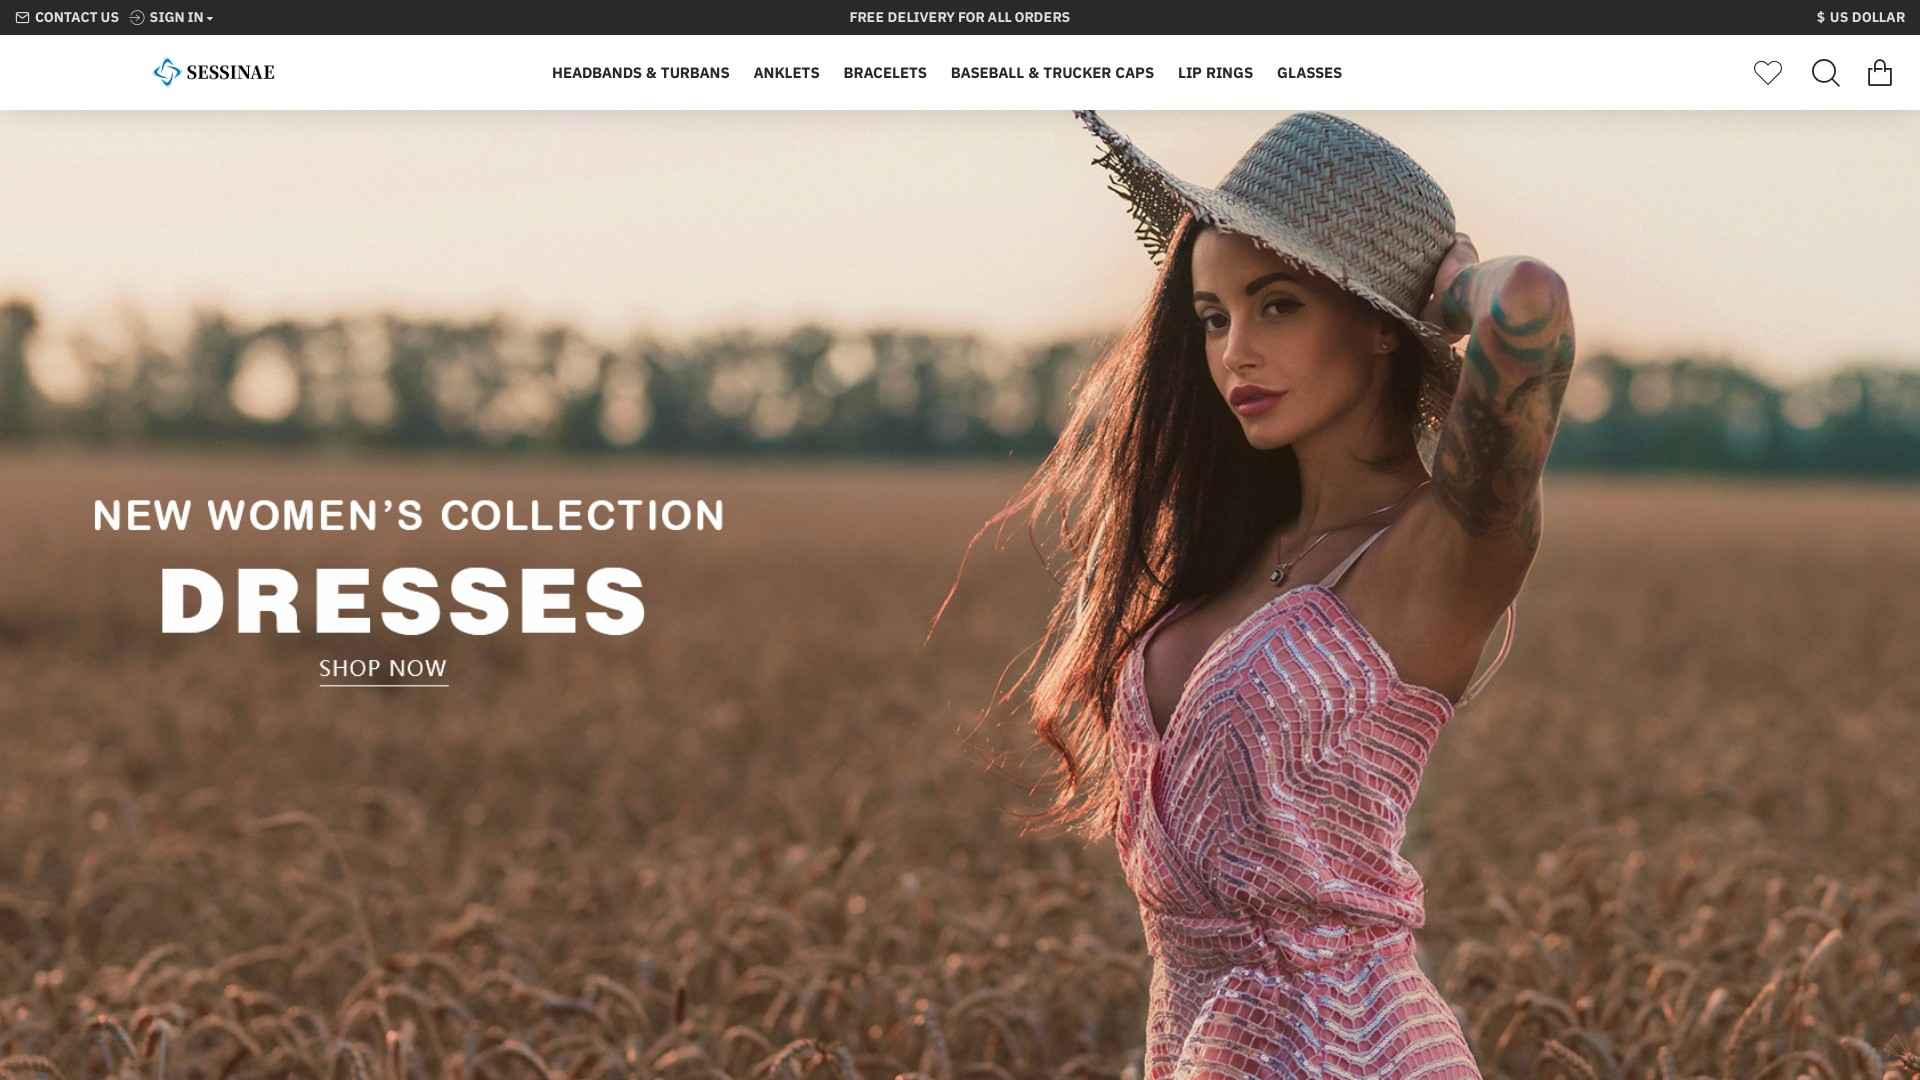 Is Sessinae a Scam or is it Legit? Review of the Online Store